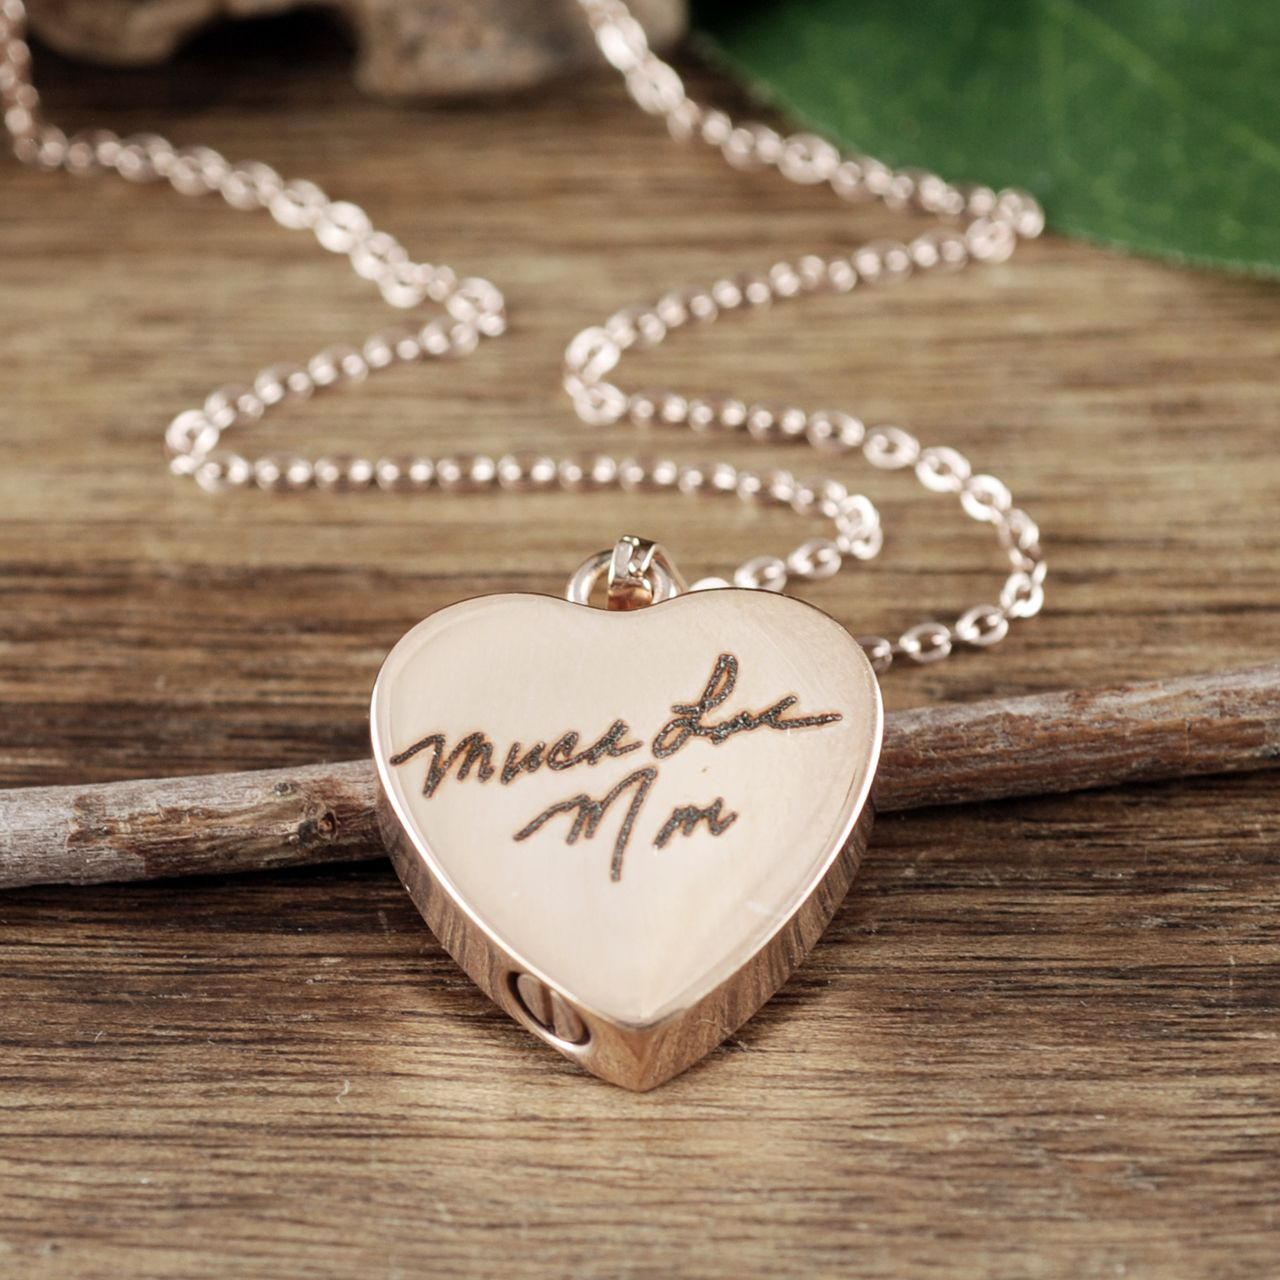 Gold Cremation Heart Necklace Cremation Jewelry Ash Jewelry Heart Cremation Pendant Urn Necklace For Ashes Cremation Necklace Memorial Gift In 2020 Personalized Monogram Necklace Ashes Jewelry Jewelry